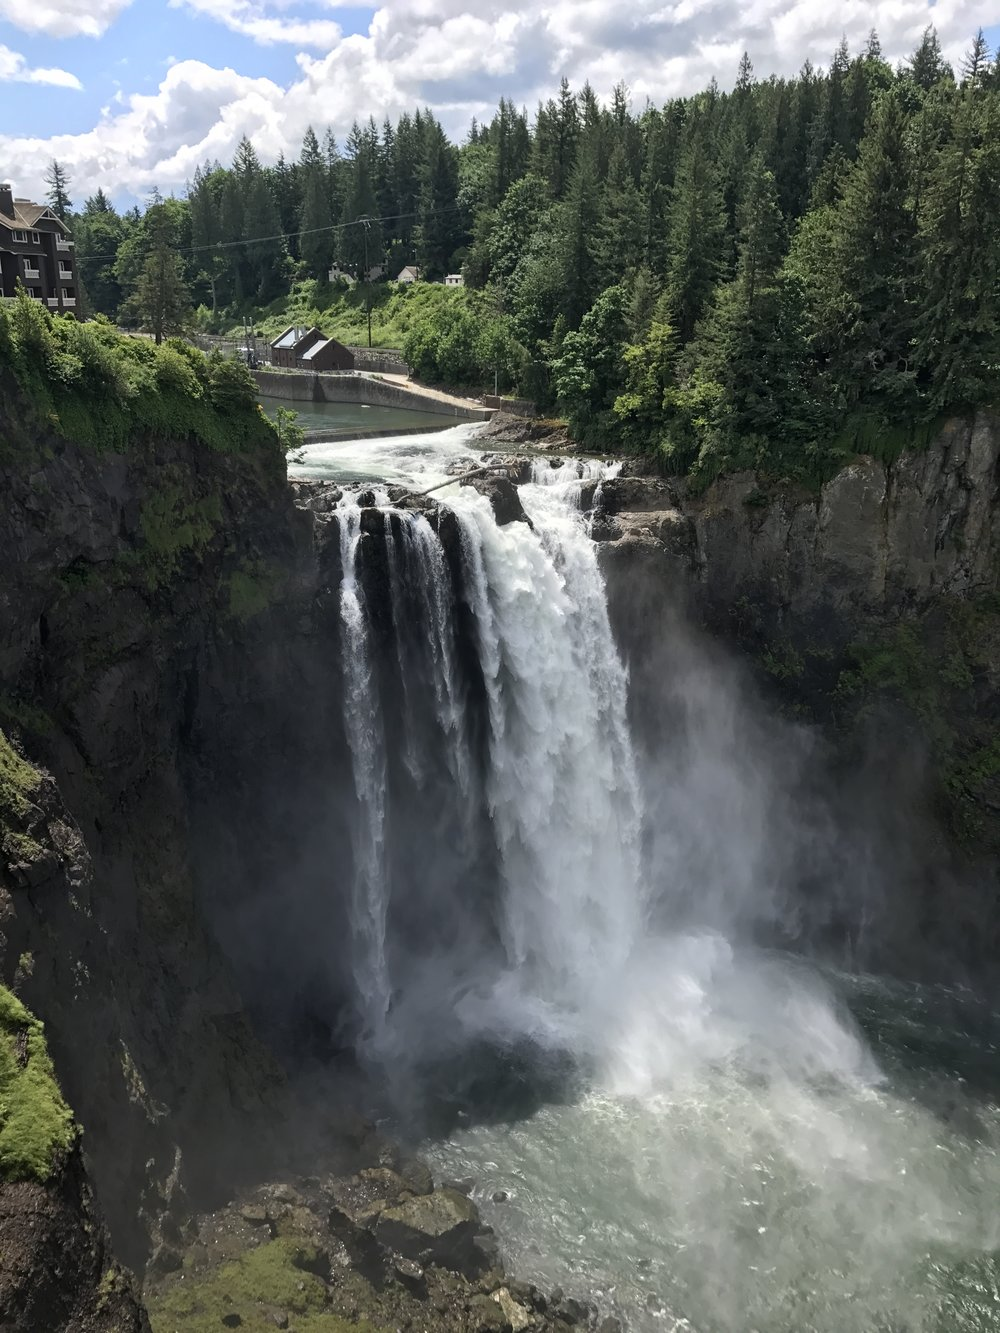 - Follow the paved trail to the left which will take you to the Snoqualmie Falls area. Enjoy the view!